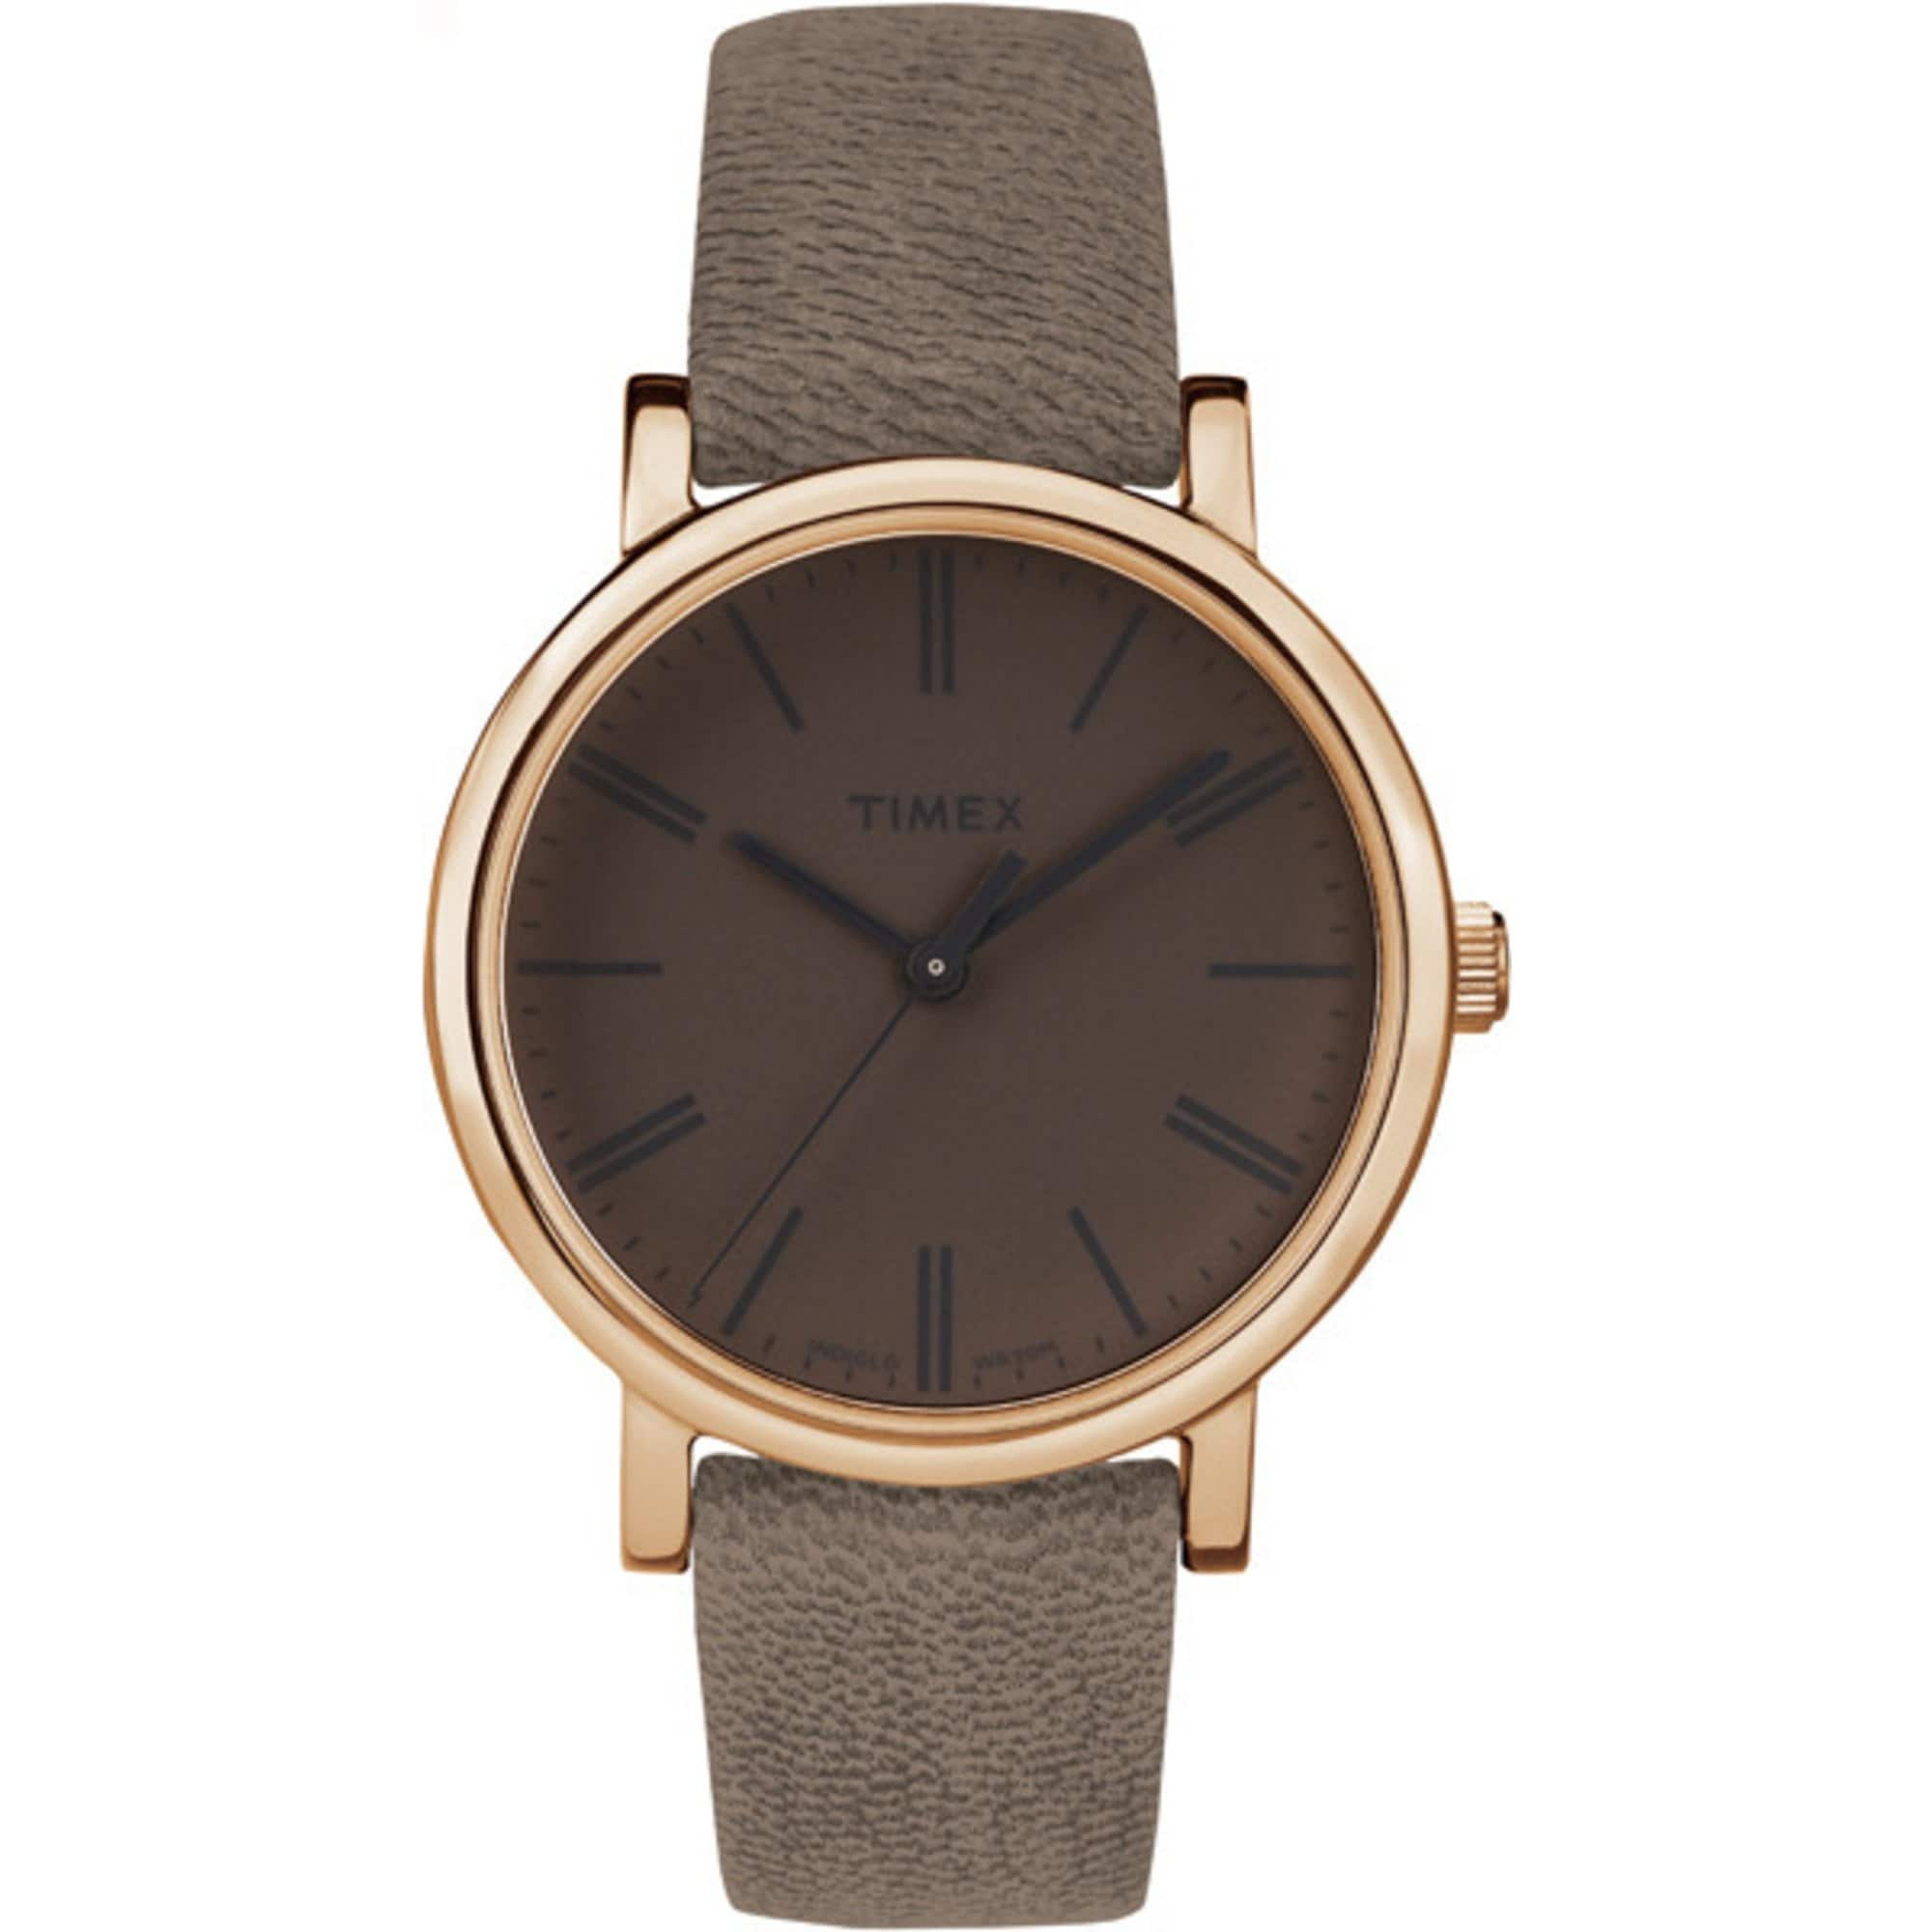 Timex Originals - Brown Leather Band Minimal Dial Casual Watch: $19.99 AC + Free Shipping